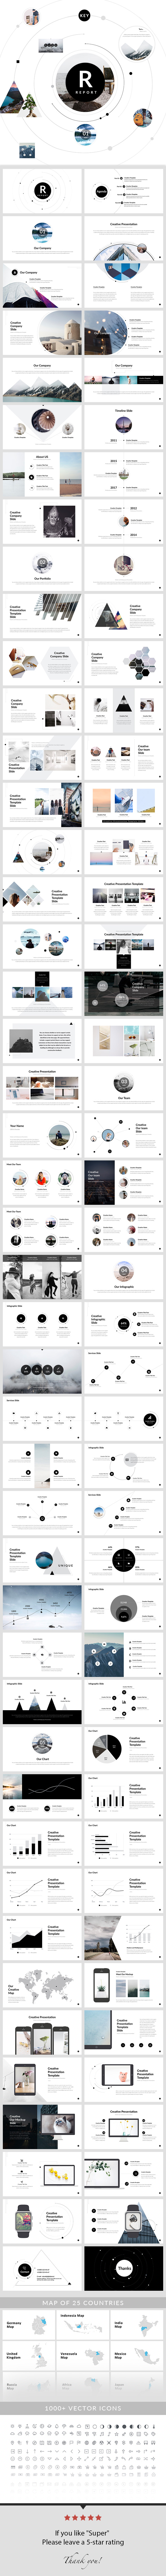 Report - Keynote Presentation Template - Creative Keynote Templates